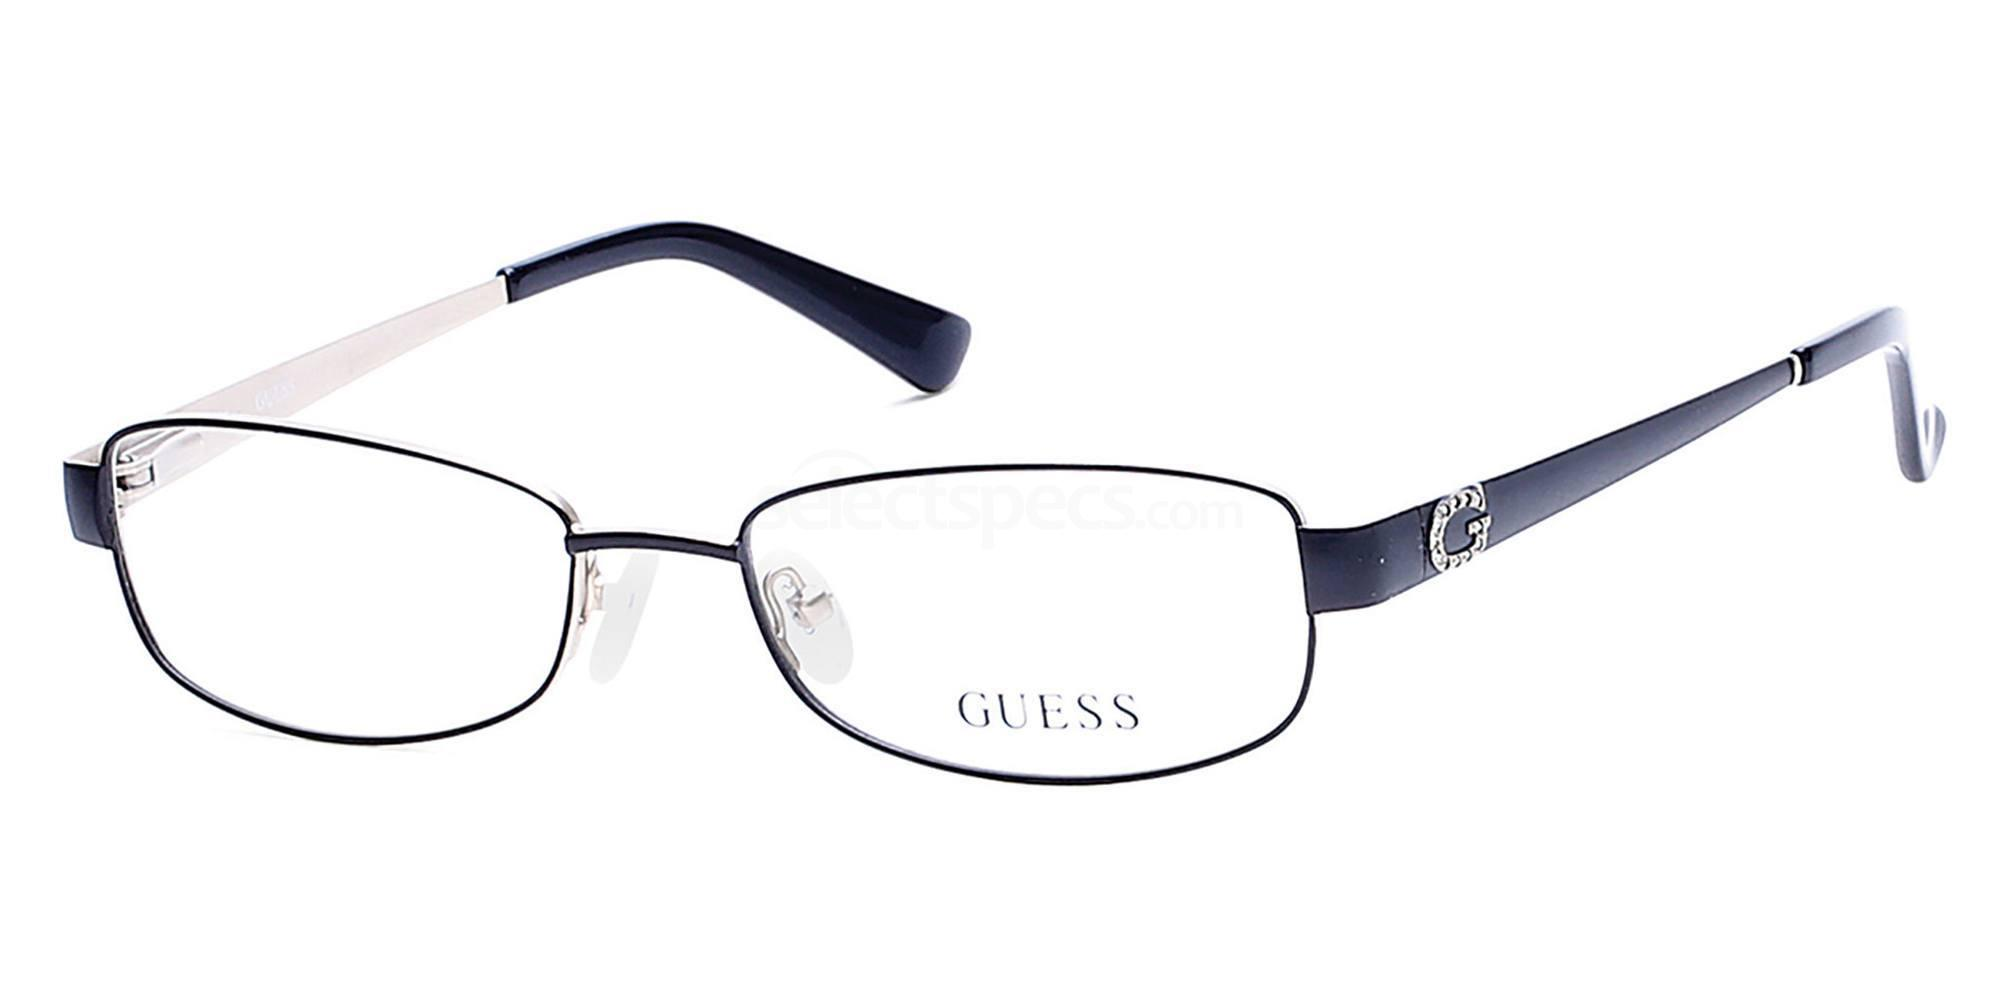 002 GU2569 Glasses, Guess